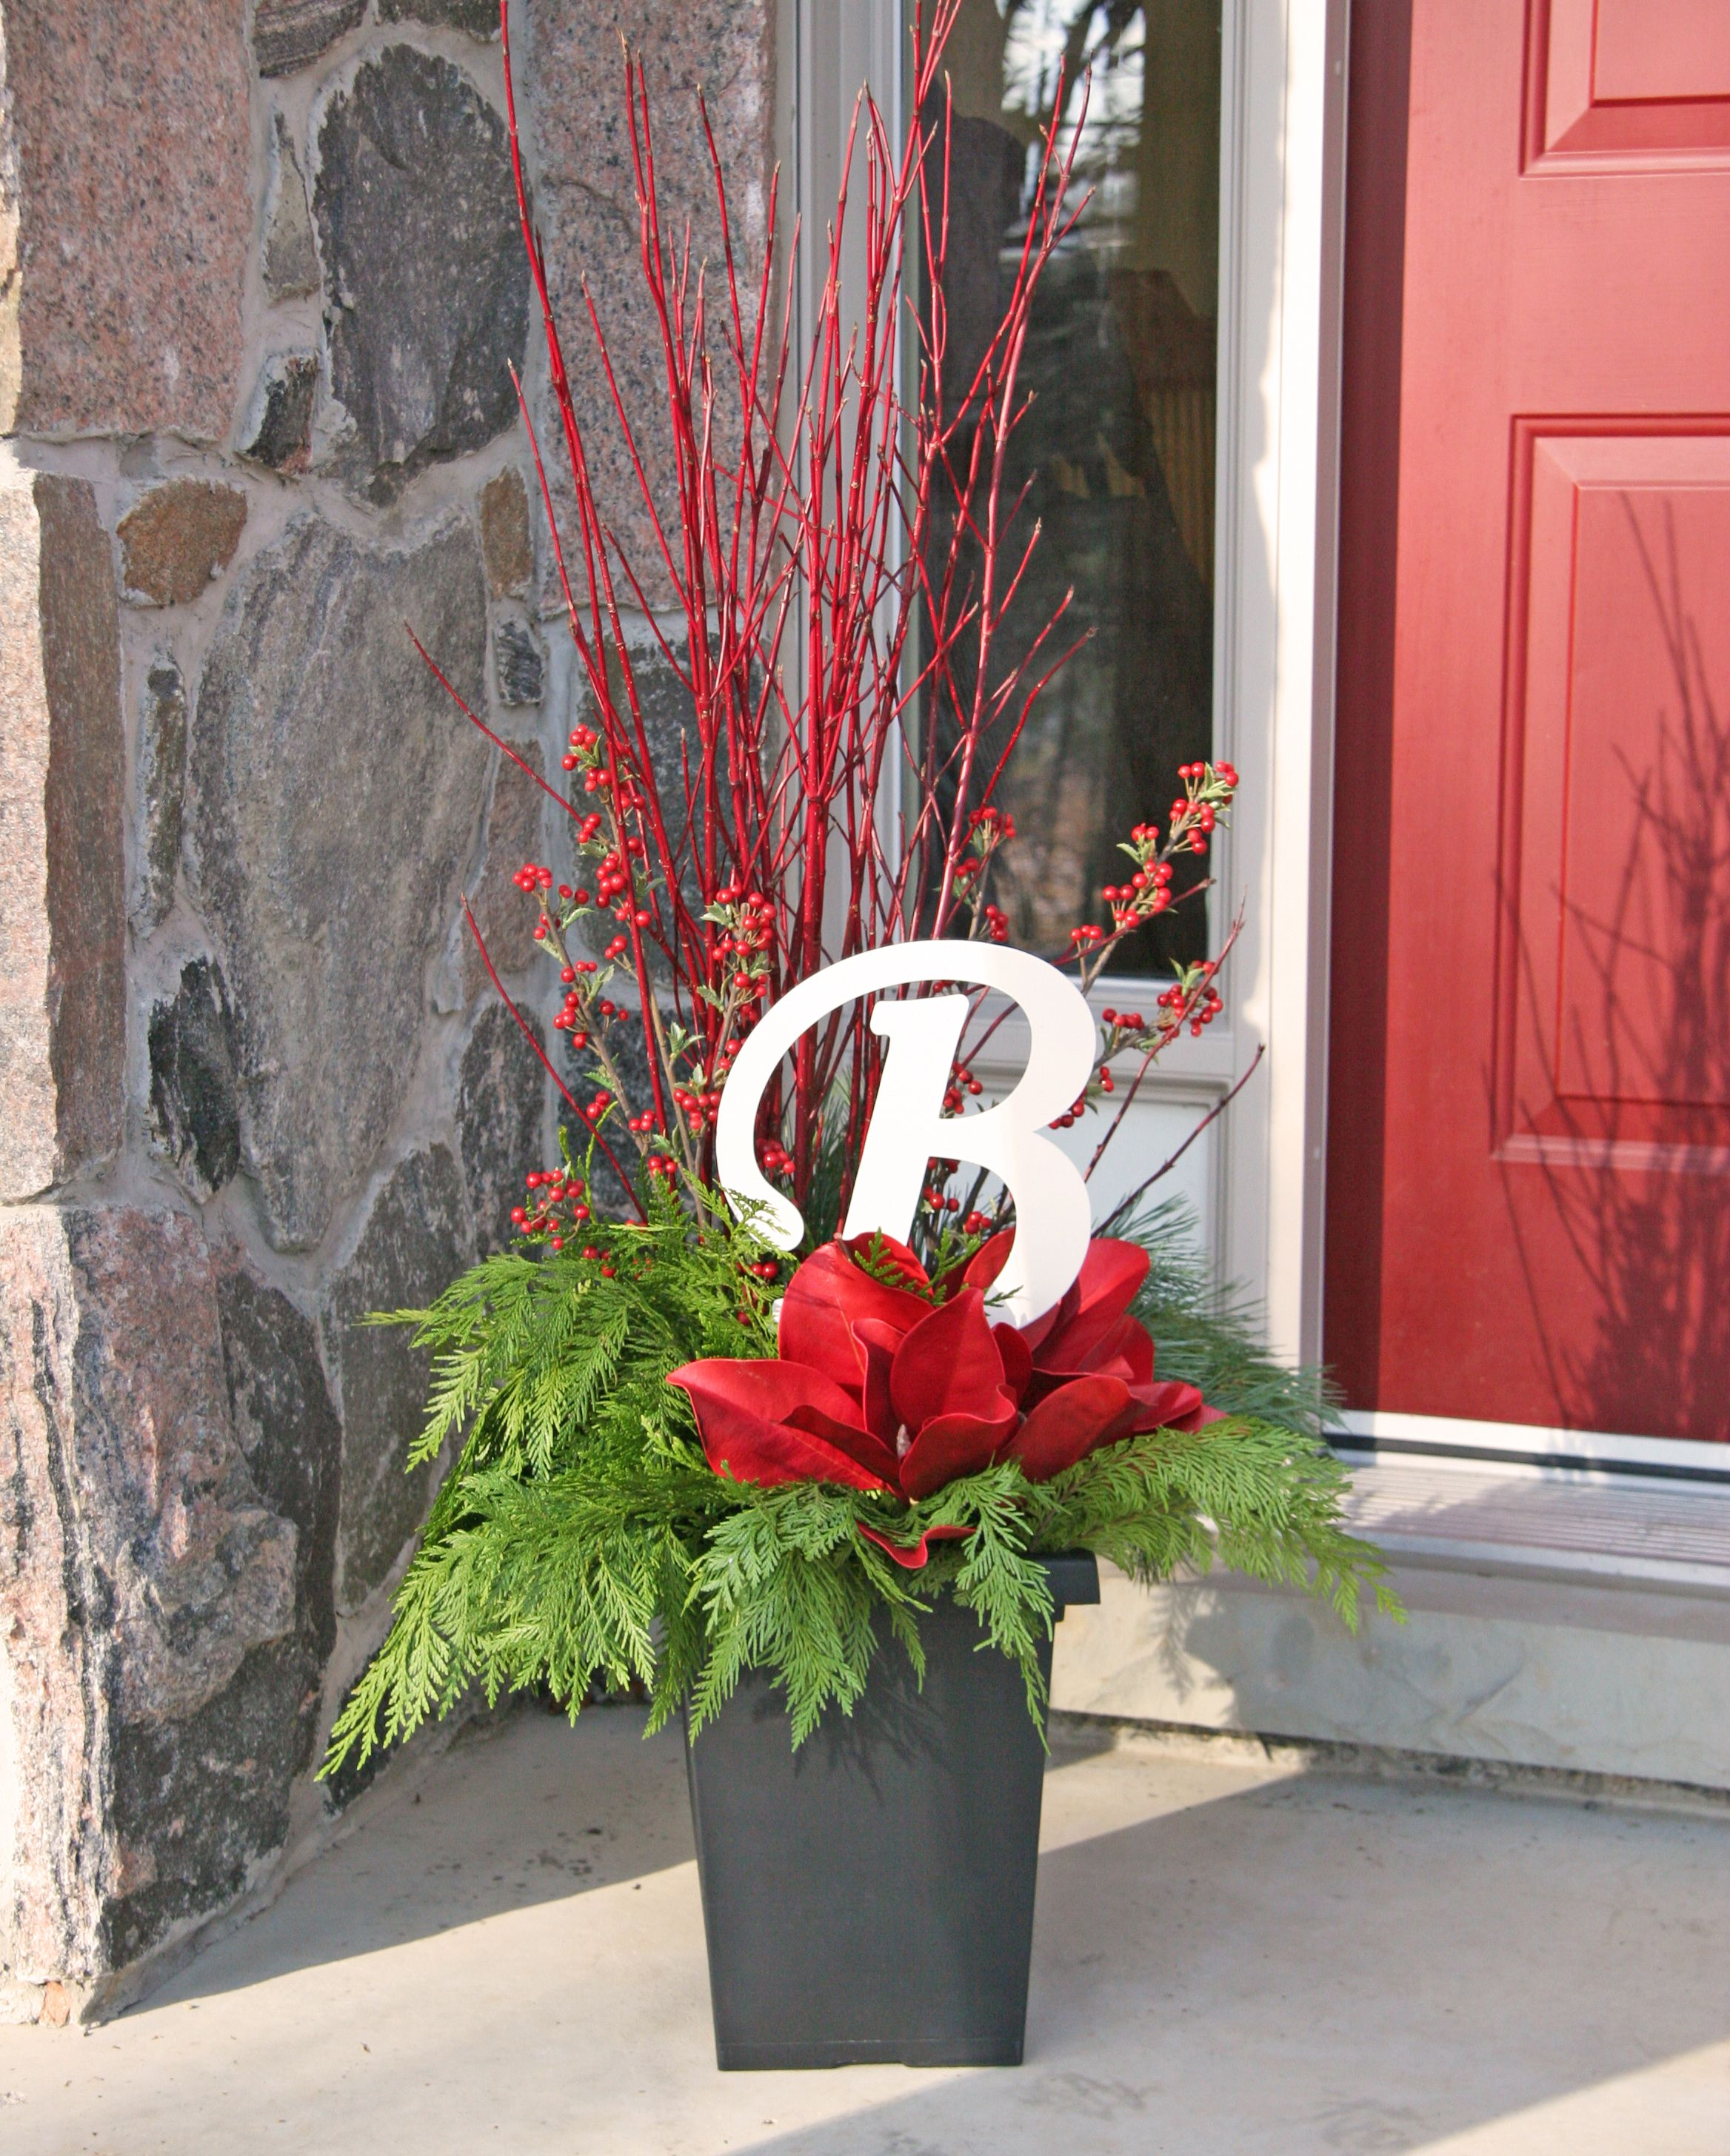 #9C2F32 Outdoor Christmas Planter Designs Submited Images. 5781 laser deco noel exterieur teleachat 2336x2912 px @ aertt.com